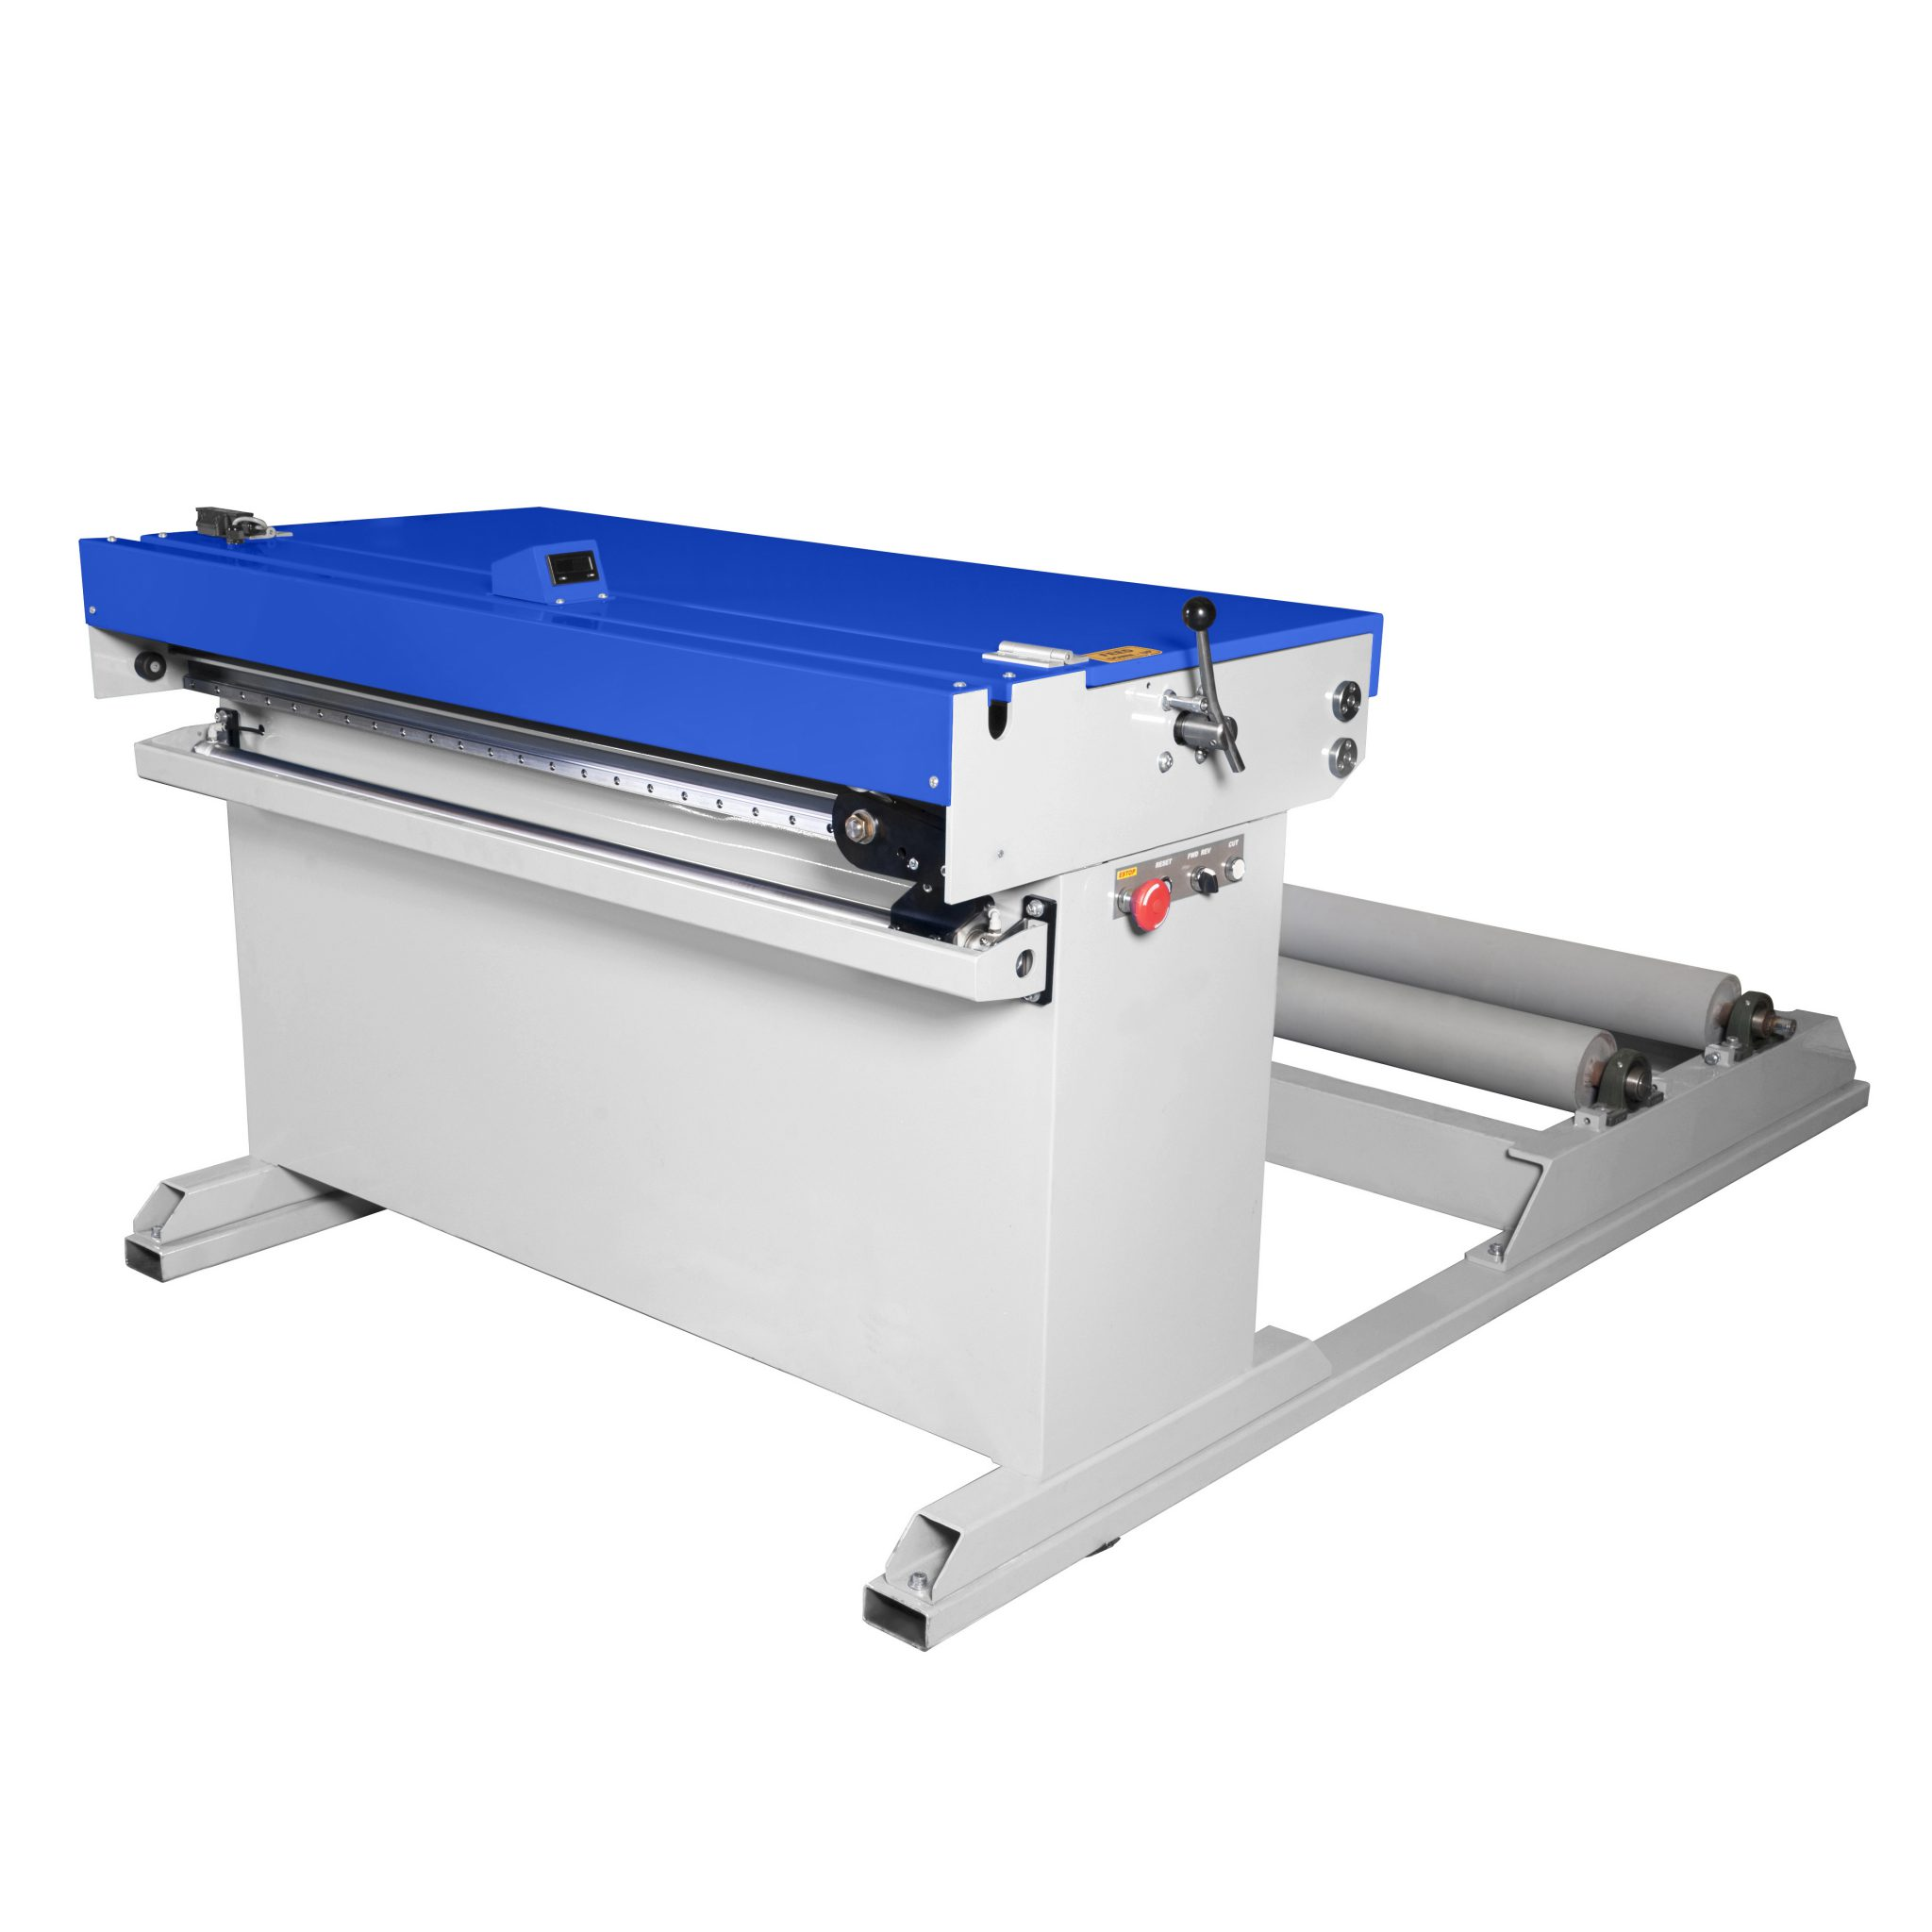 AutoKut Junior cut to length sheet metal equipment